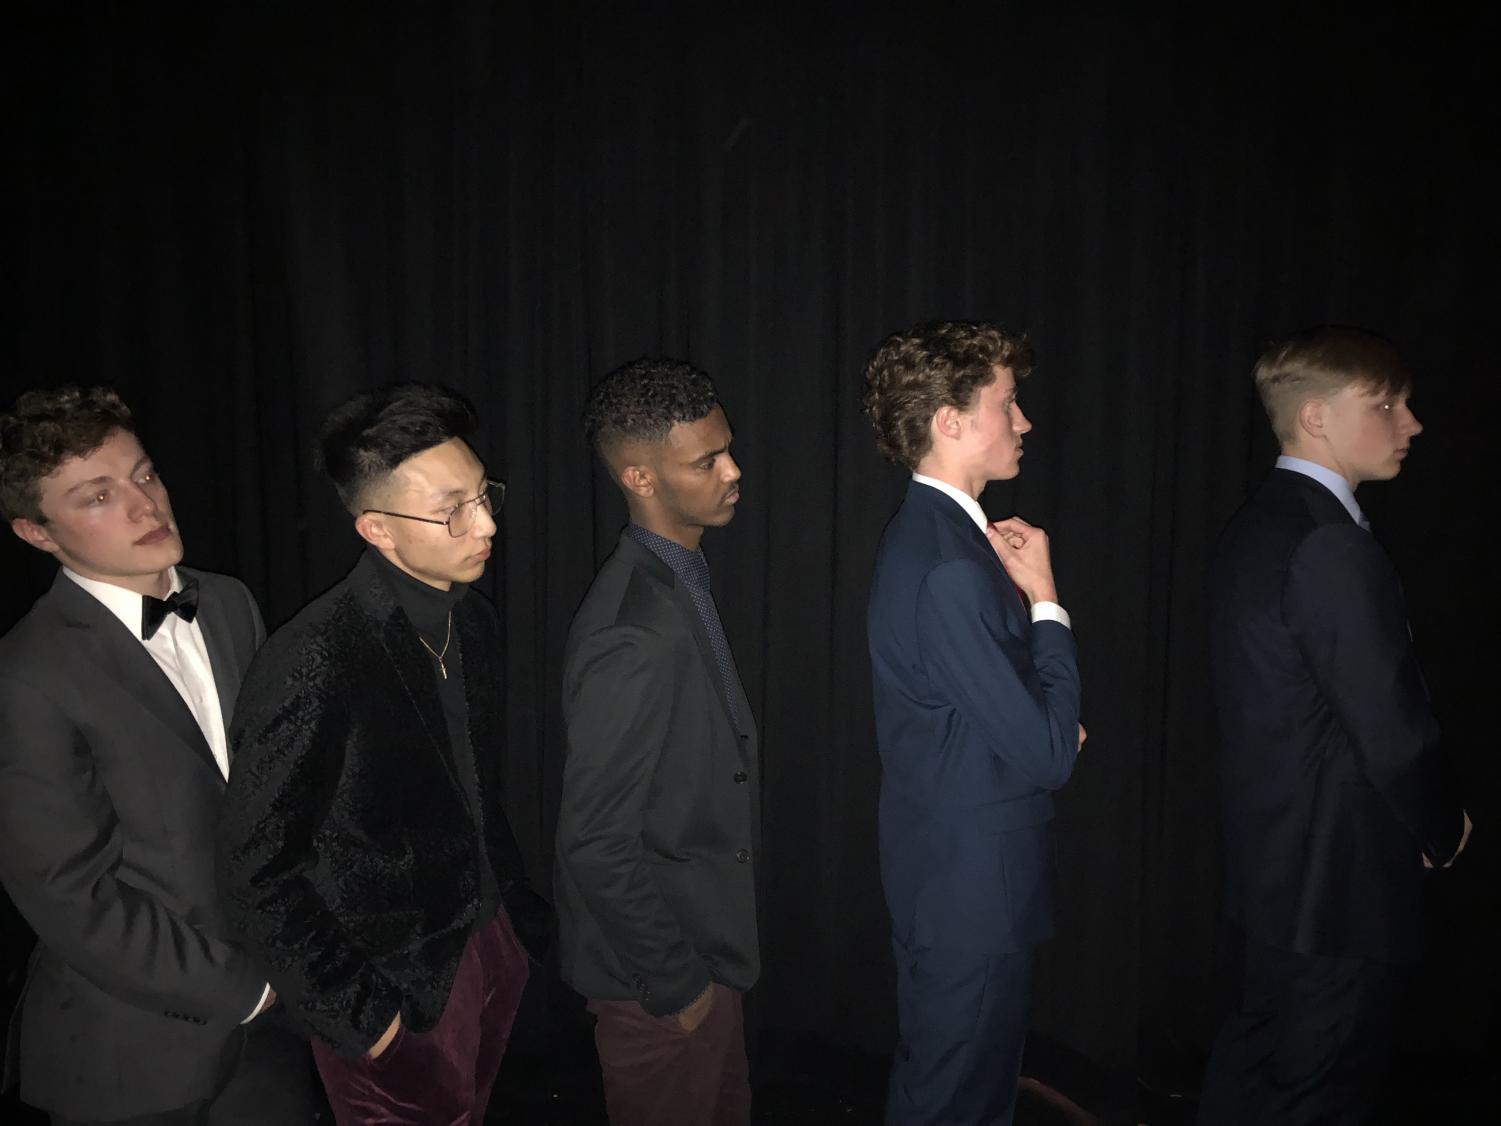 (From Left to Right) seniors James Gore, Matt DInh, Idris Dahir, Cam Foti and Alex Bellem prepare for their Mr. Elegance acts backstage.